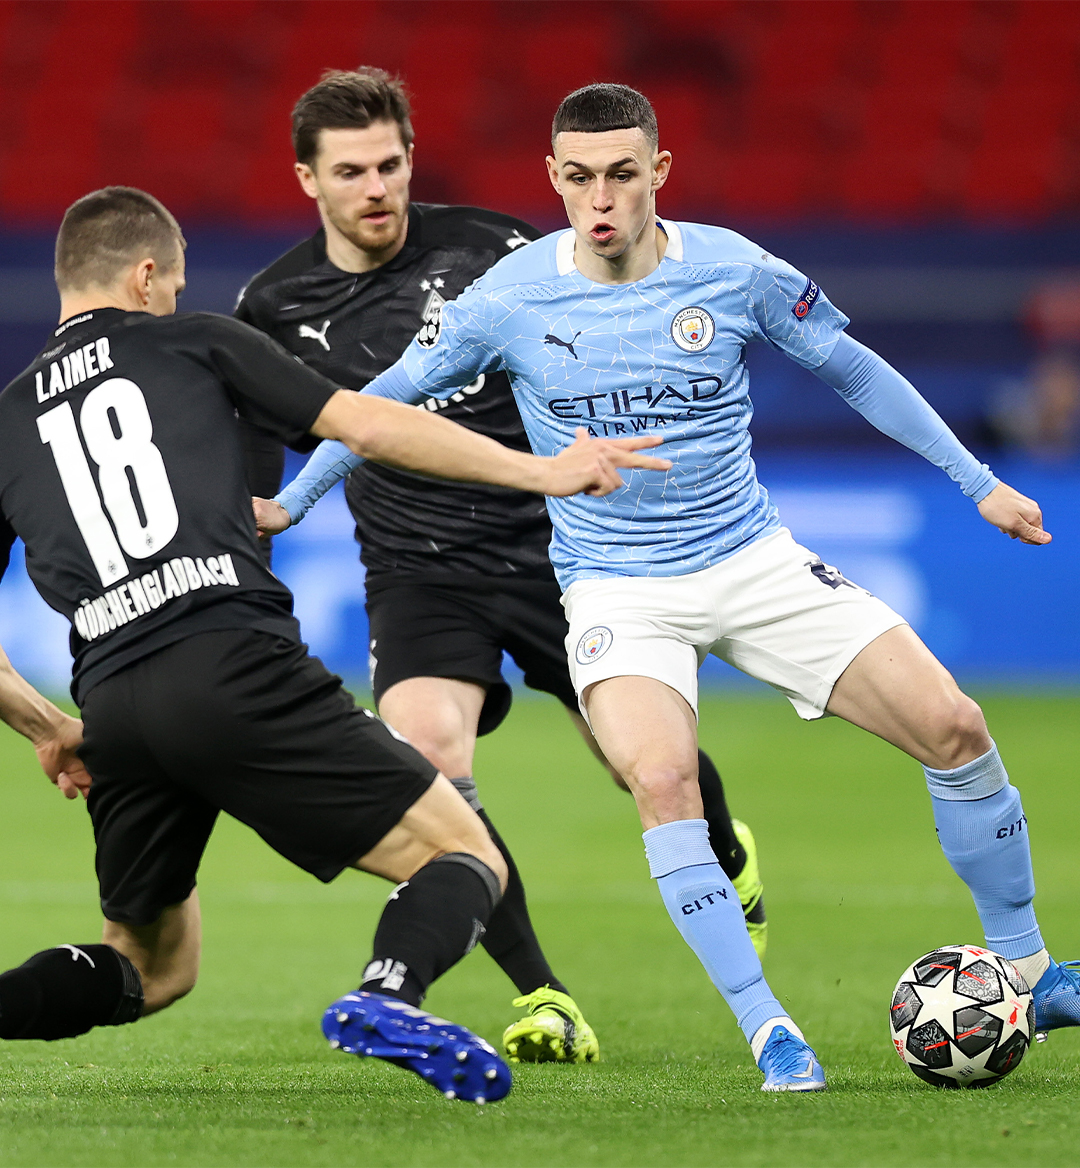 meet phil foden mobile